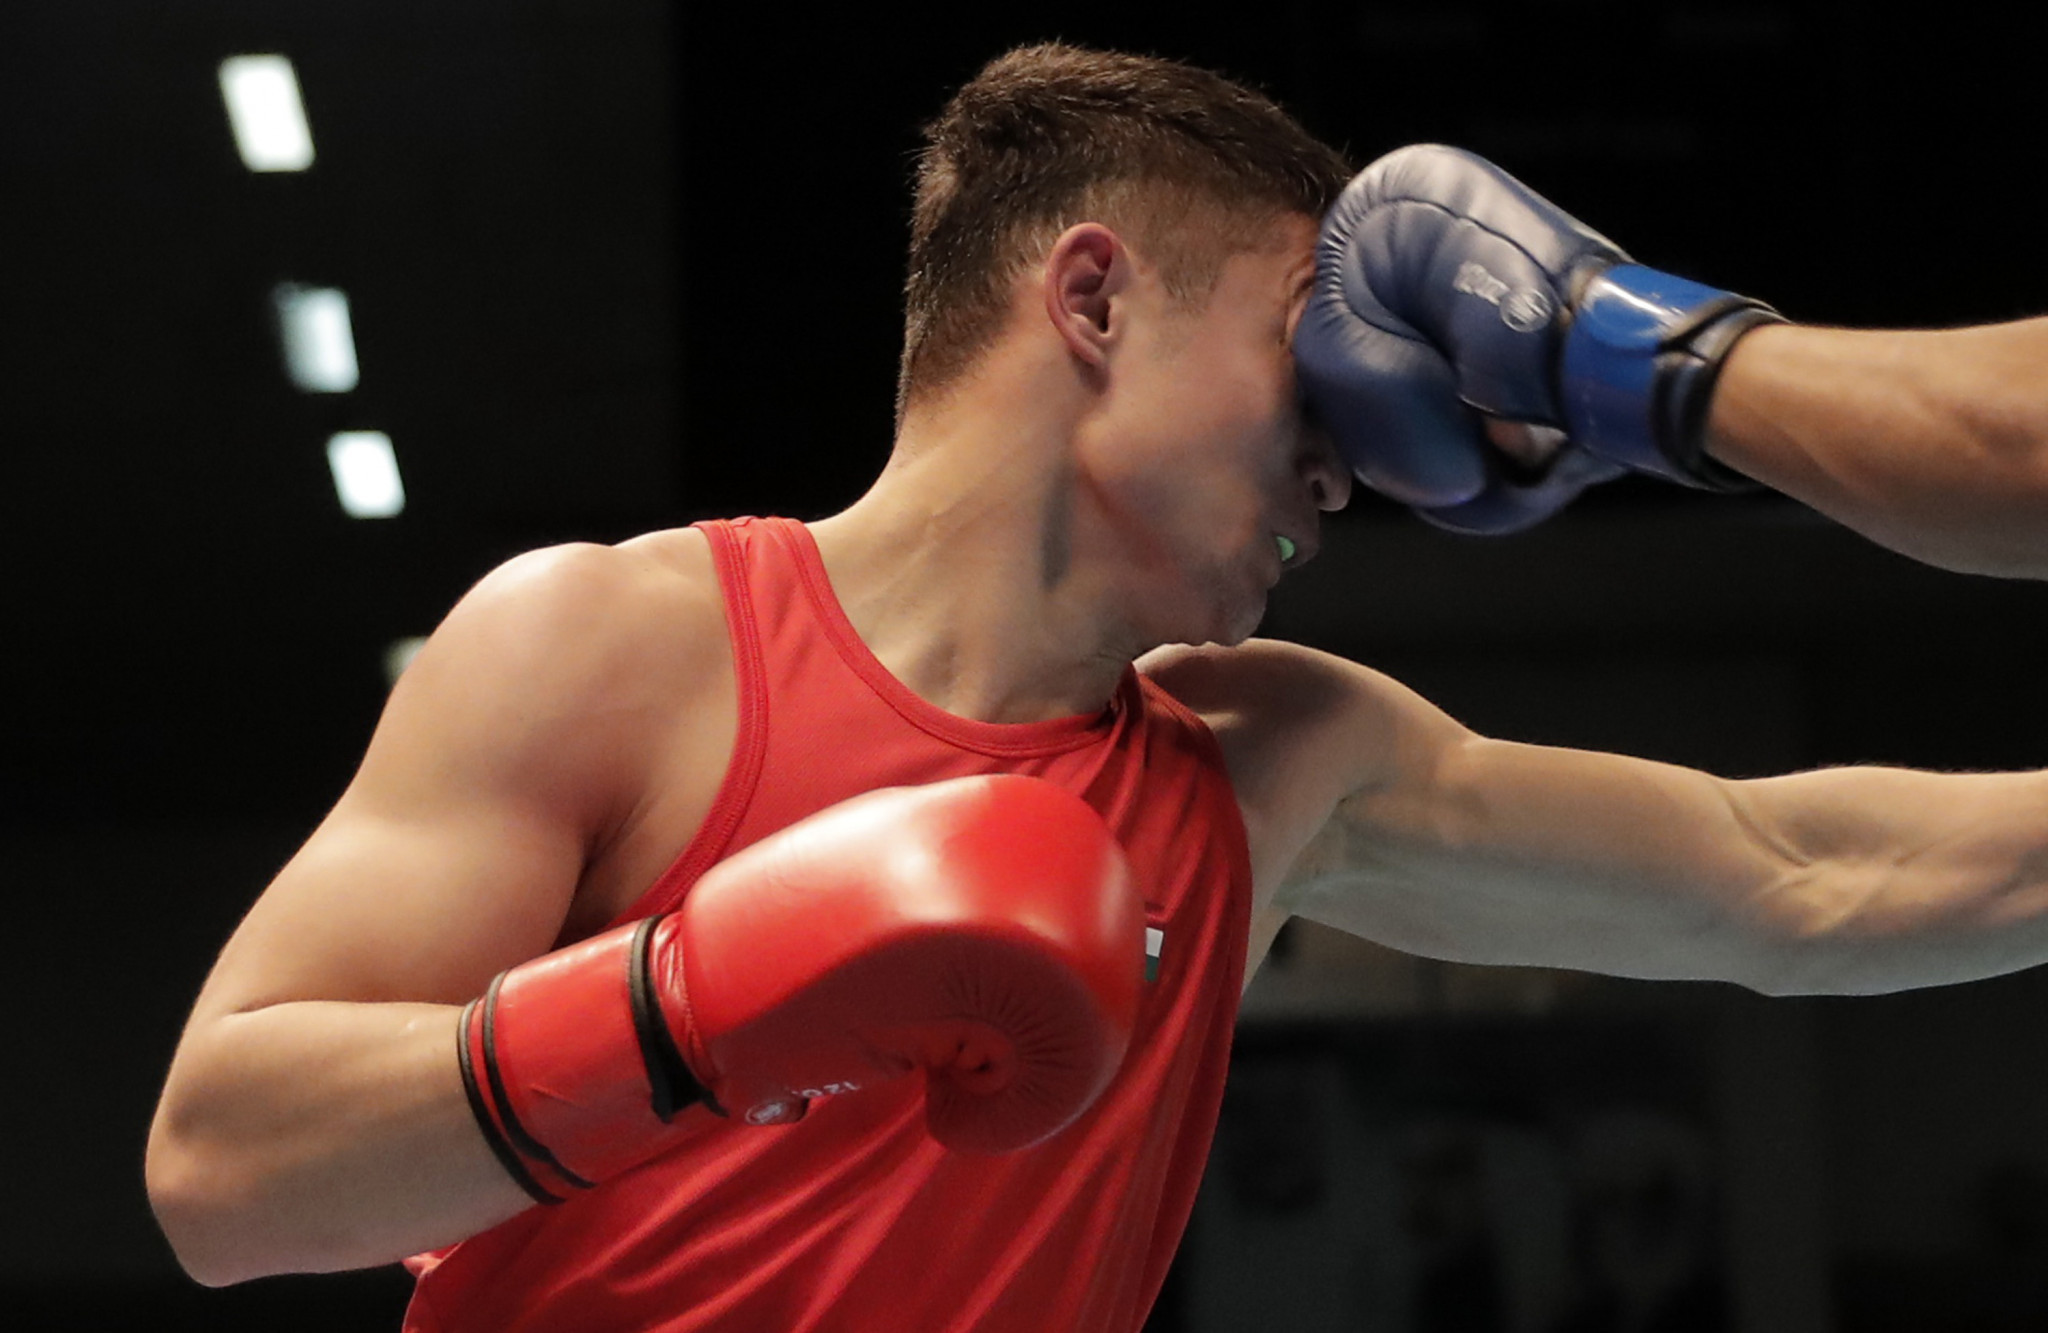 The Asia-Oceania Olympic boxing qualifier was moved to Amman with little time to prepare ©JOC